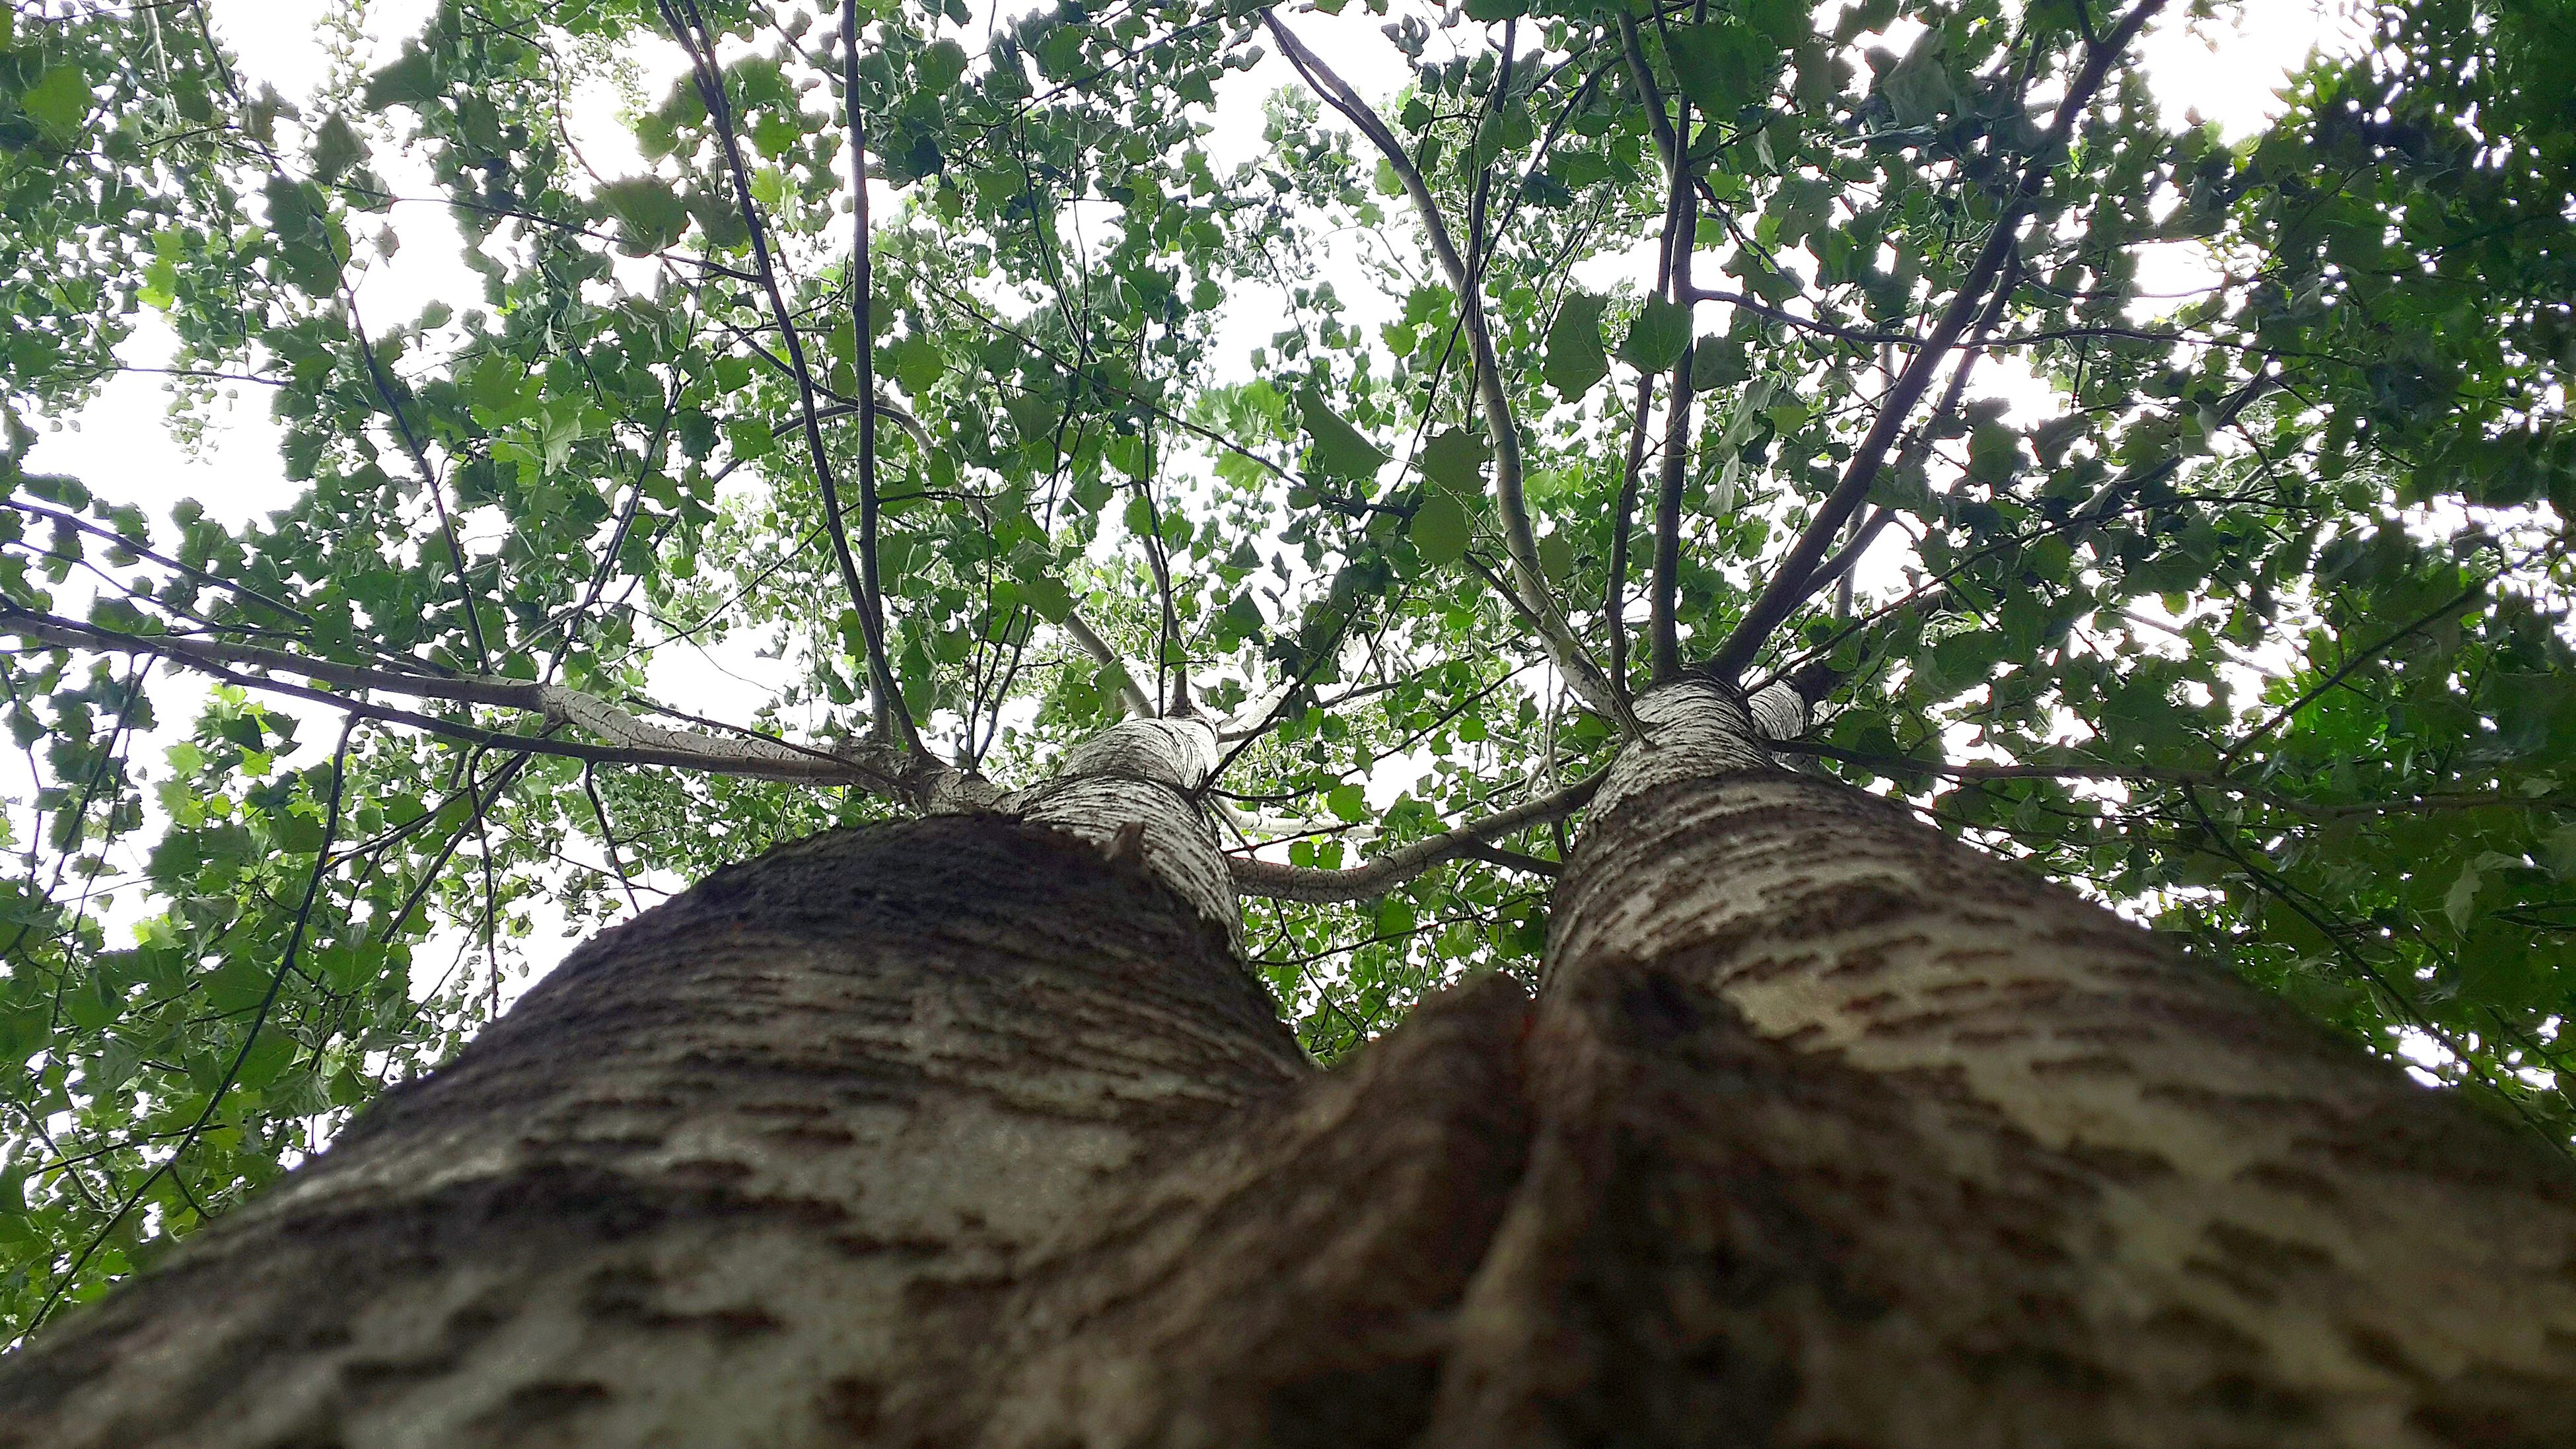 tree, low angle view, growth, branch, tree trunk, nature, green color, tranquility, beauty in nature, forest, leaf, sky, day, outdoors, no people, lush foliage, sunlight, green, tranquil scene, scenics